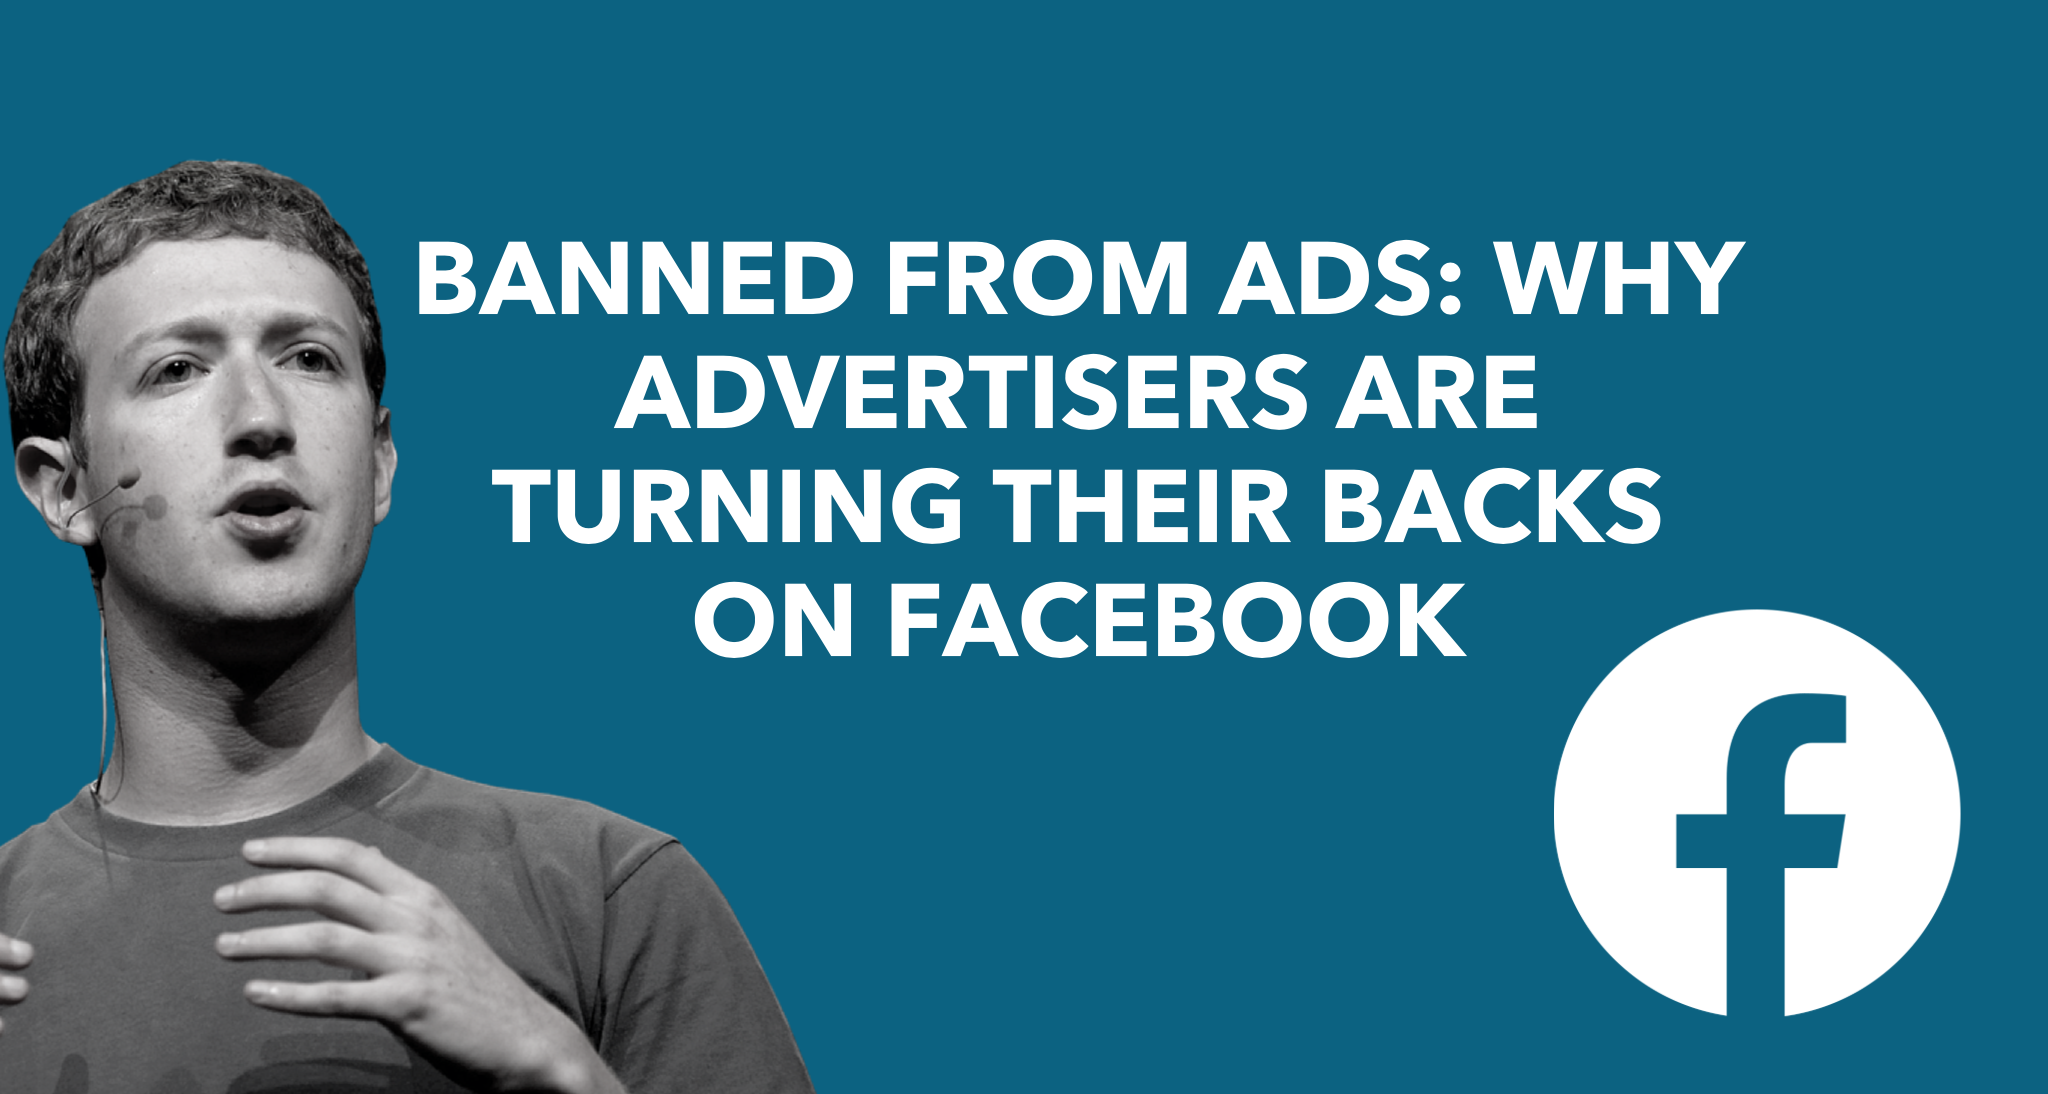 Banned From Ads: Why Advertisers are Turning Their Backs on Facebook